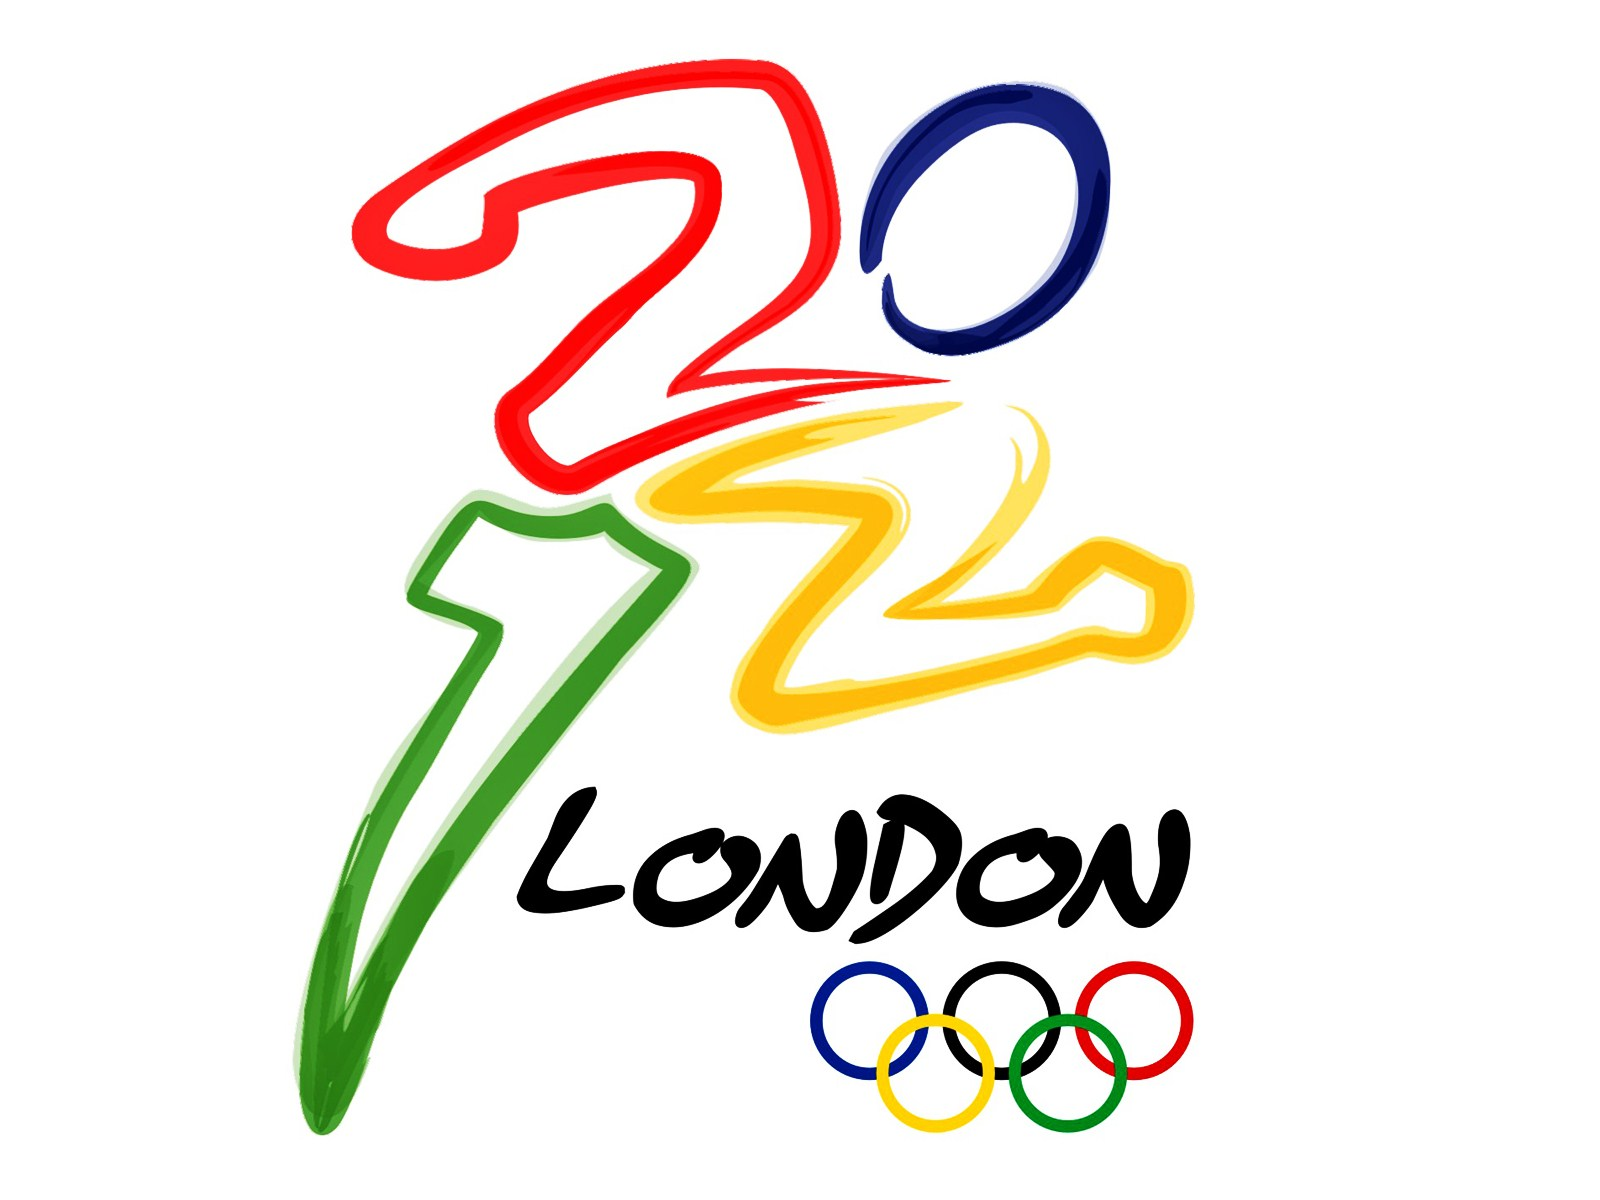 London 2012 Wallpapers